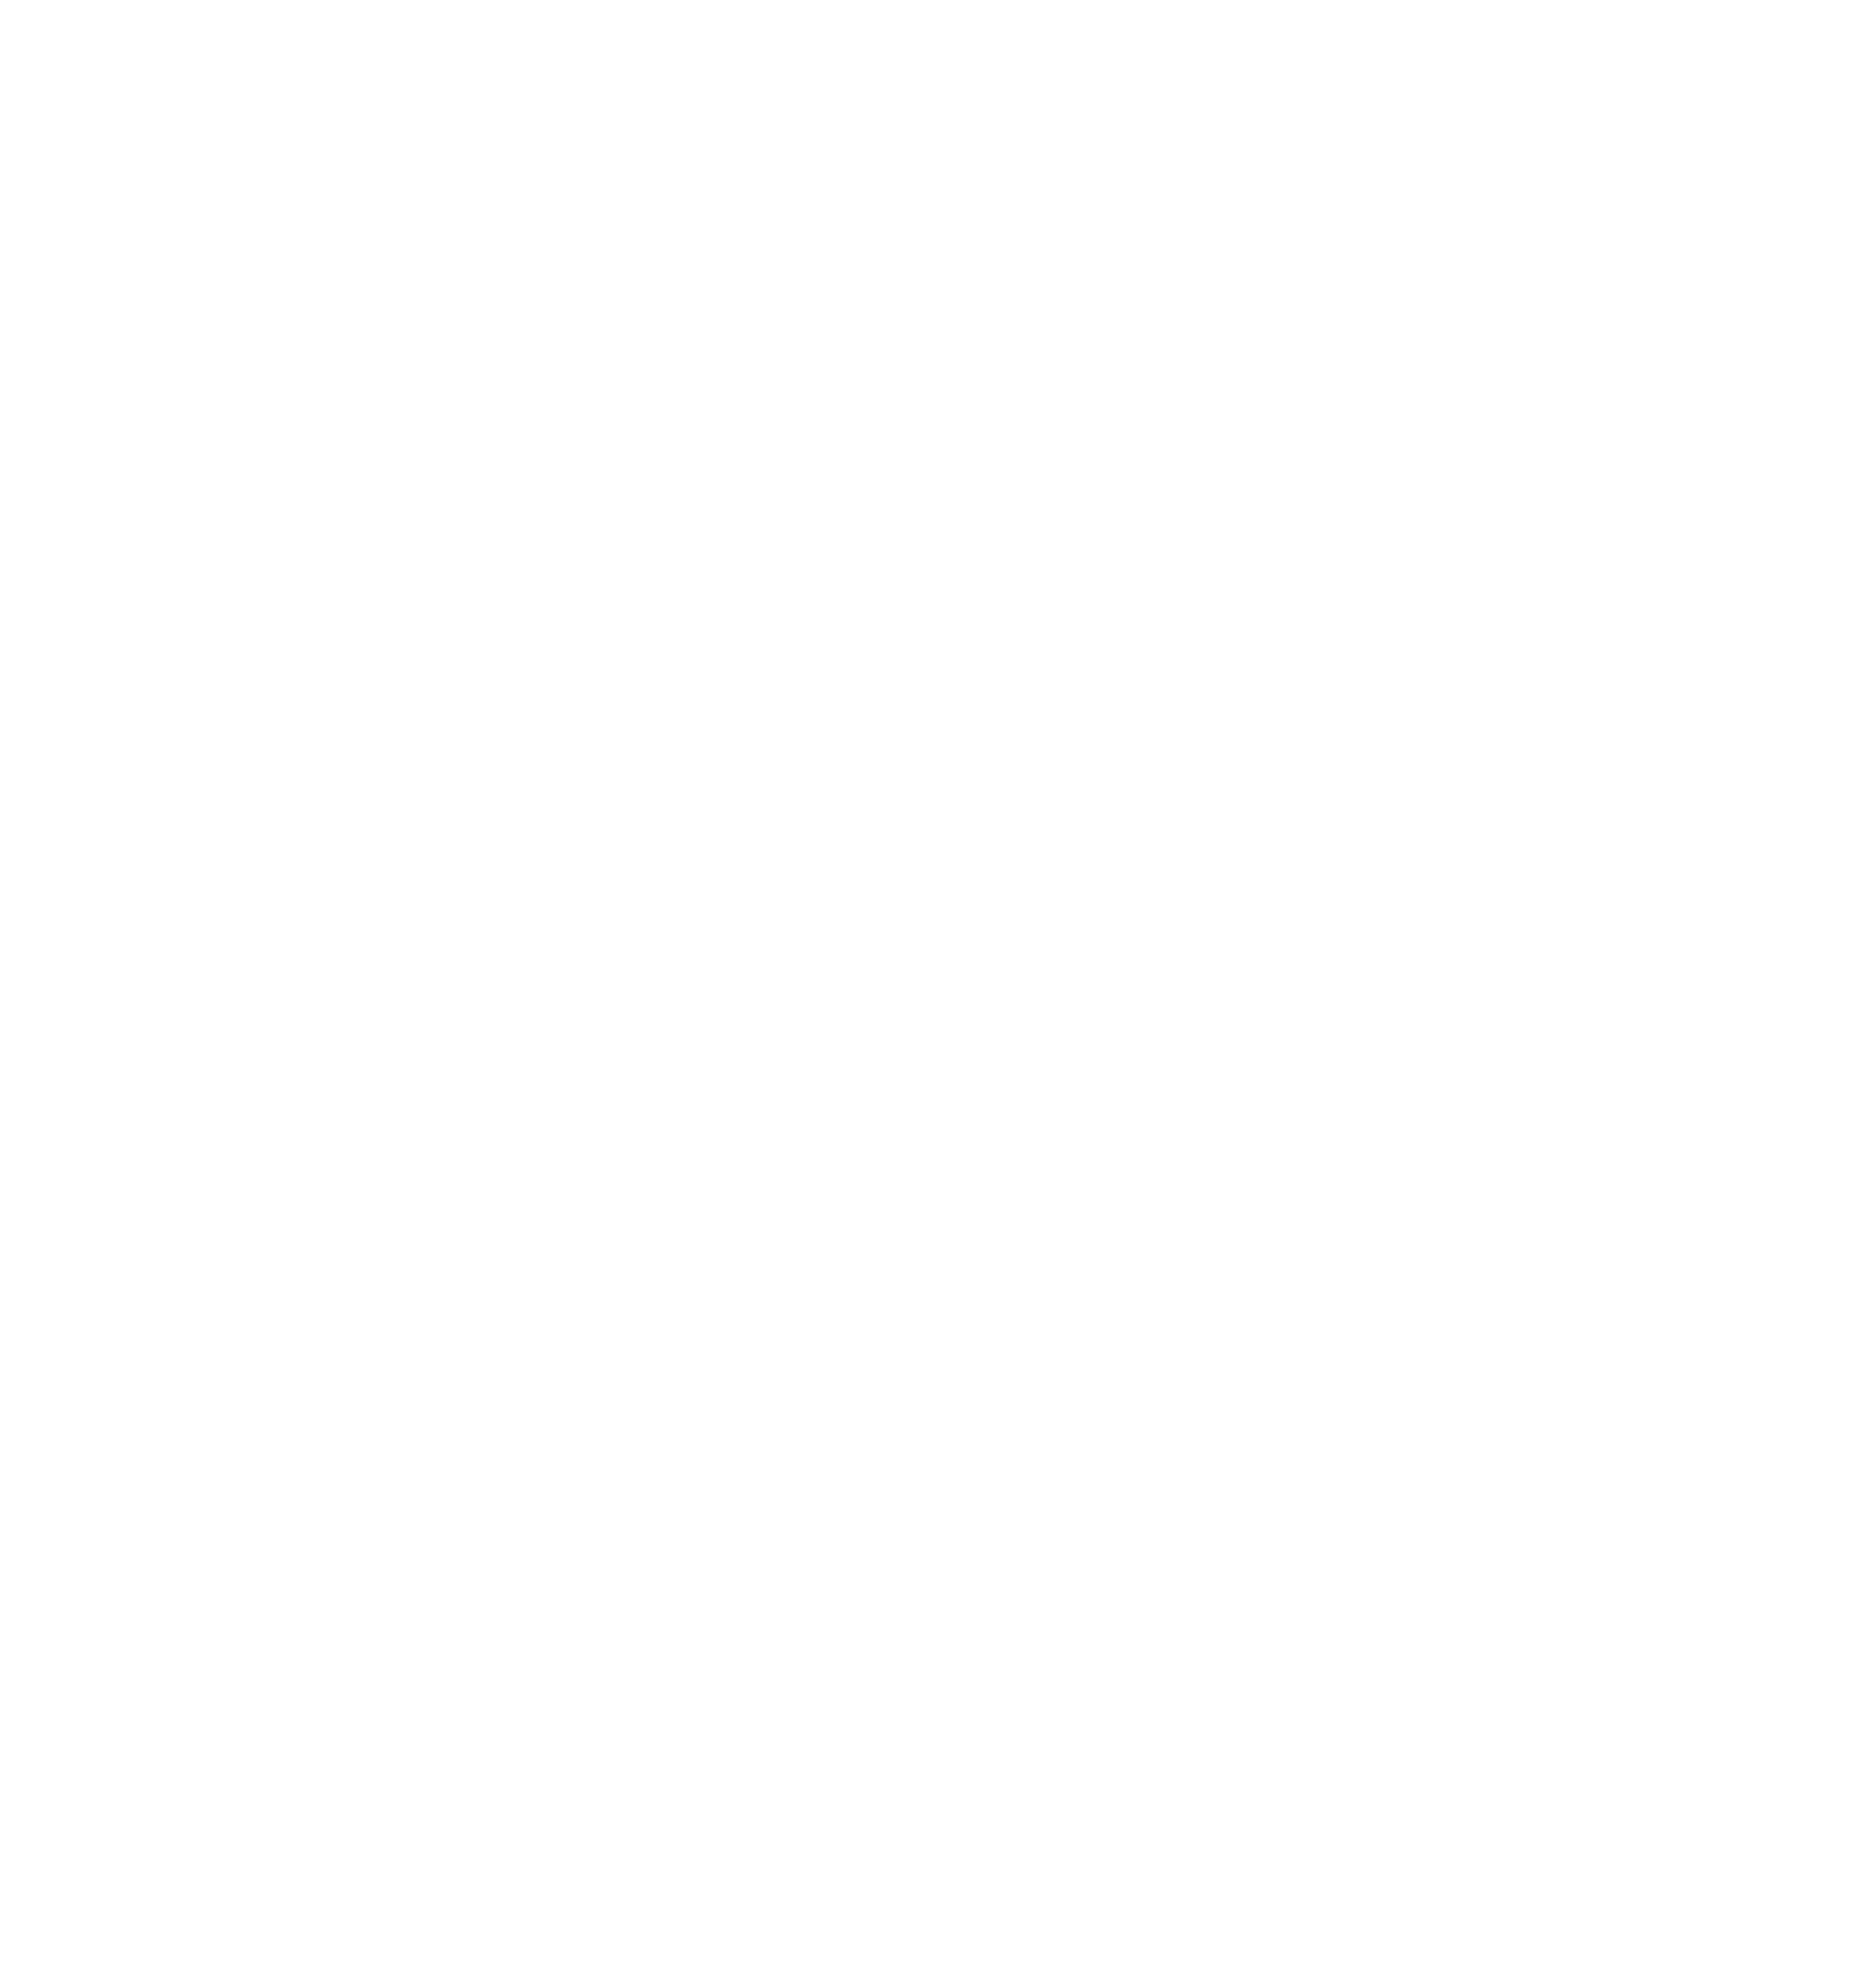 Tuesday Night Standings